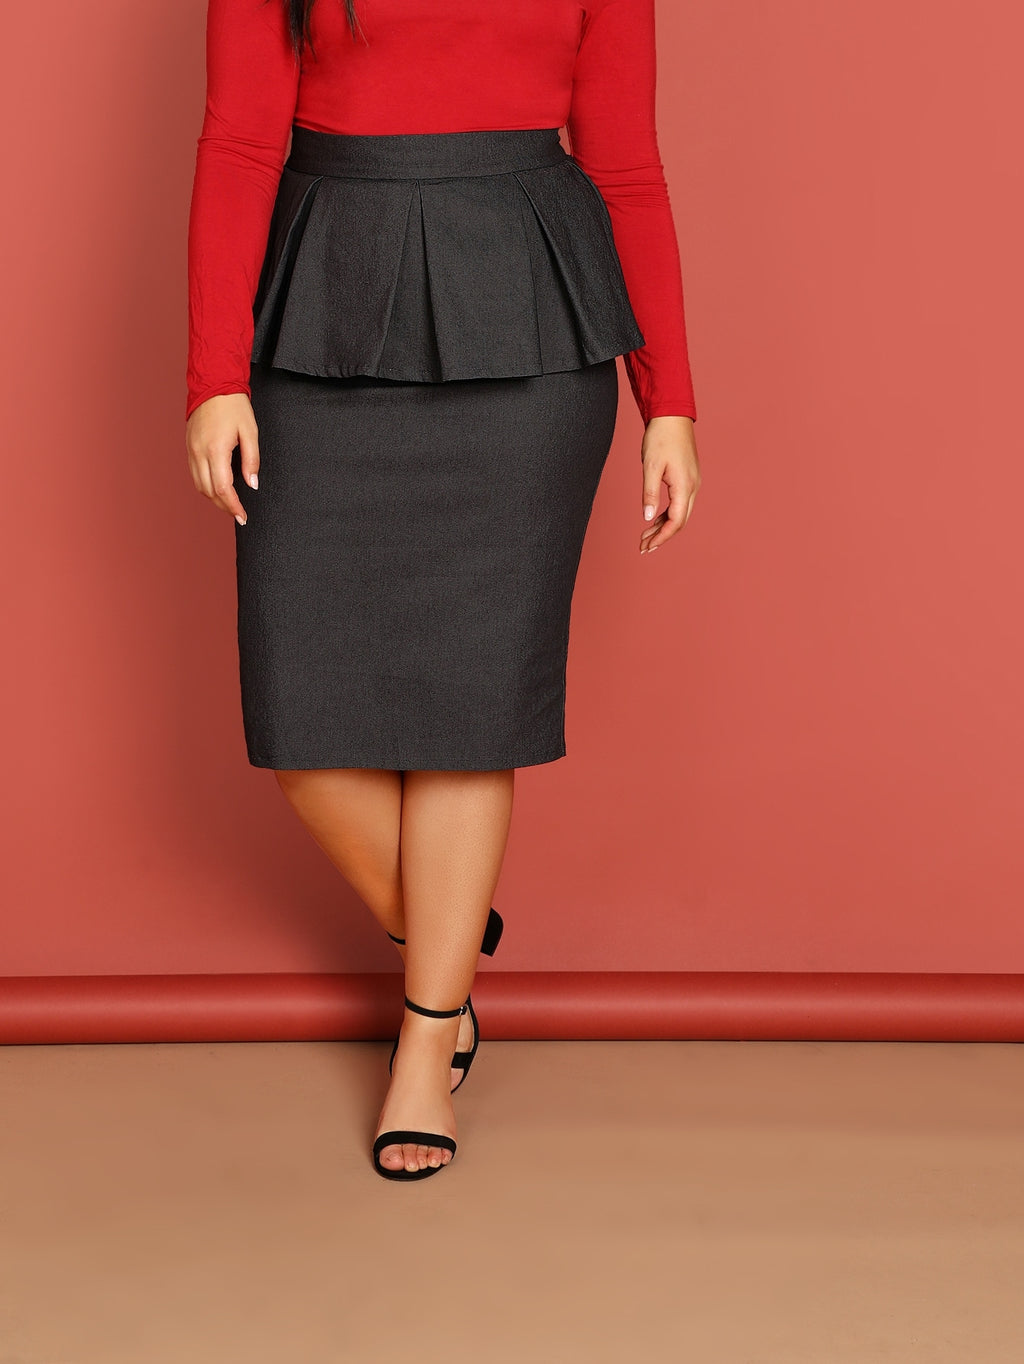 Plus Size Skirts - Flounce Trim Solid Skirt